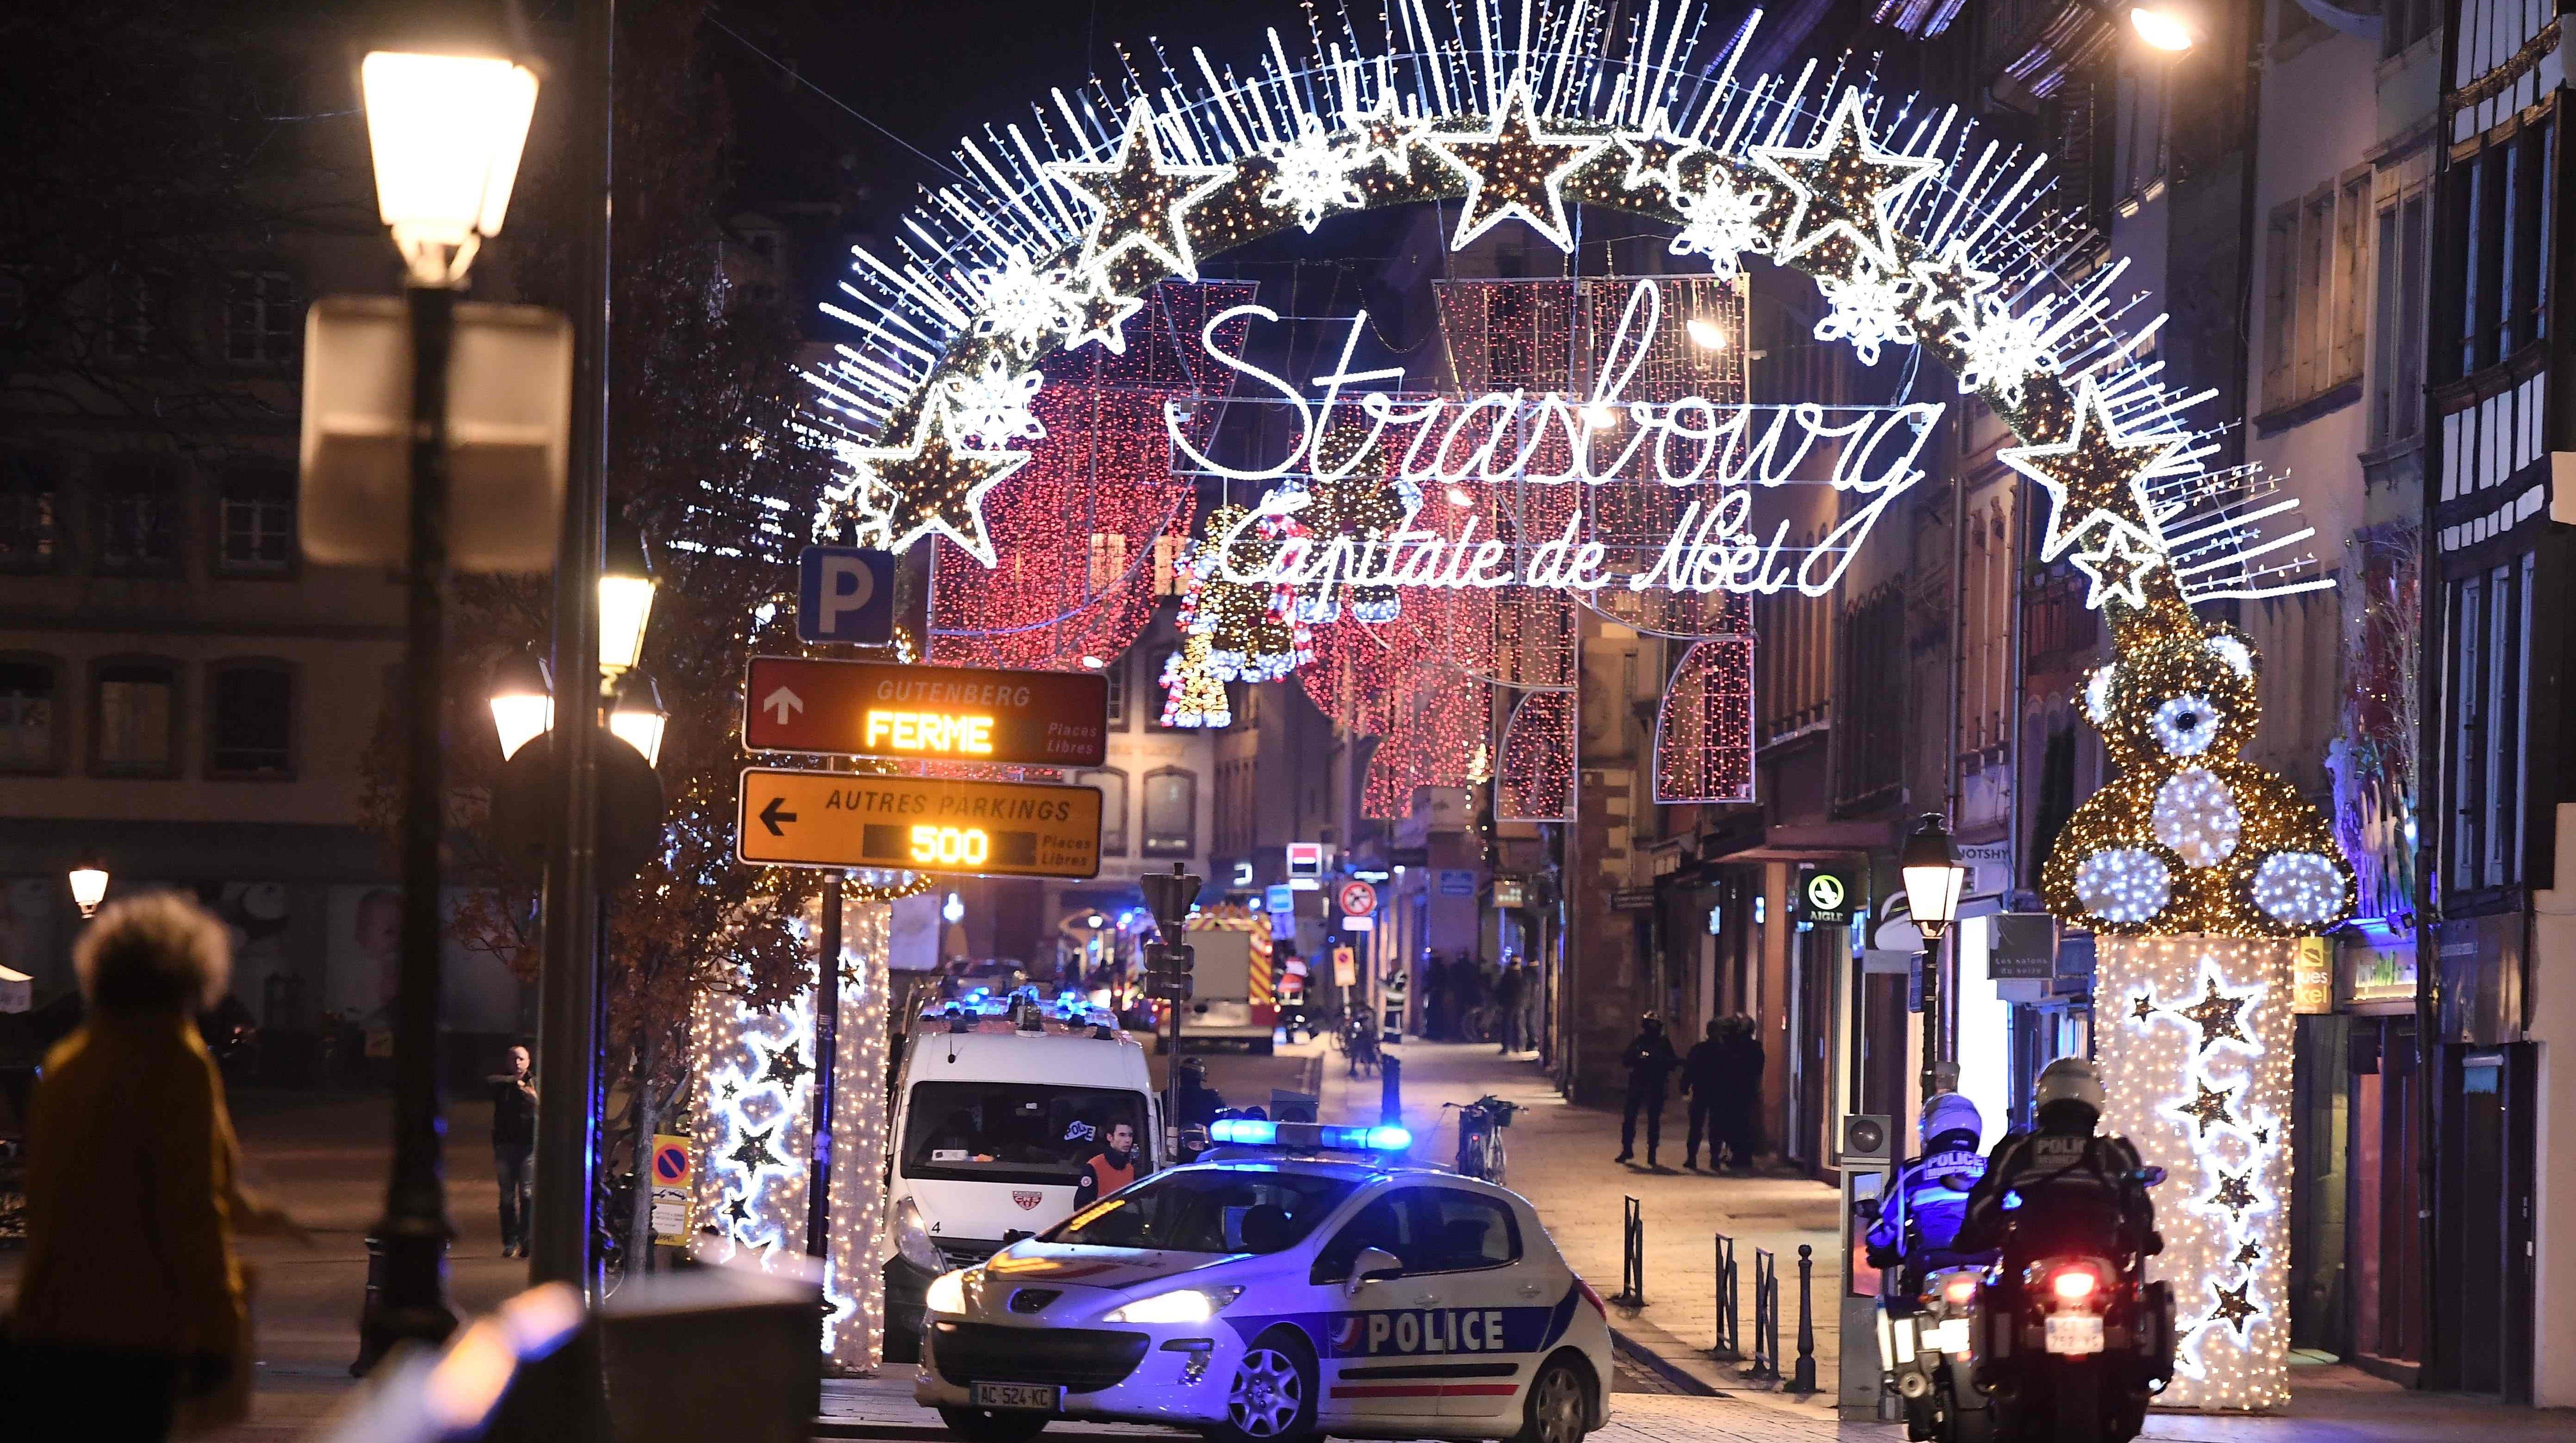 A police car is parked blocking traffic in the French city of Strasbourg after a gunman killed at least four people and wounded 11 others in a suspected terrorist attack, according to police union officials.